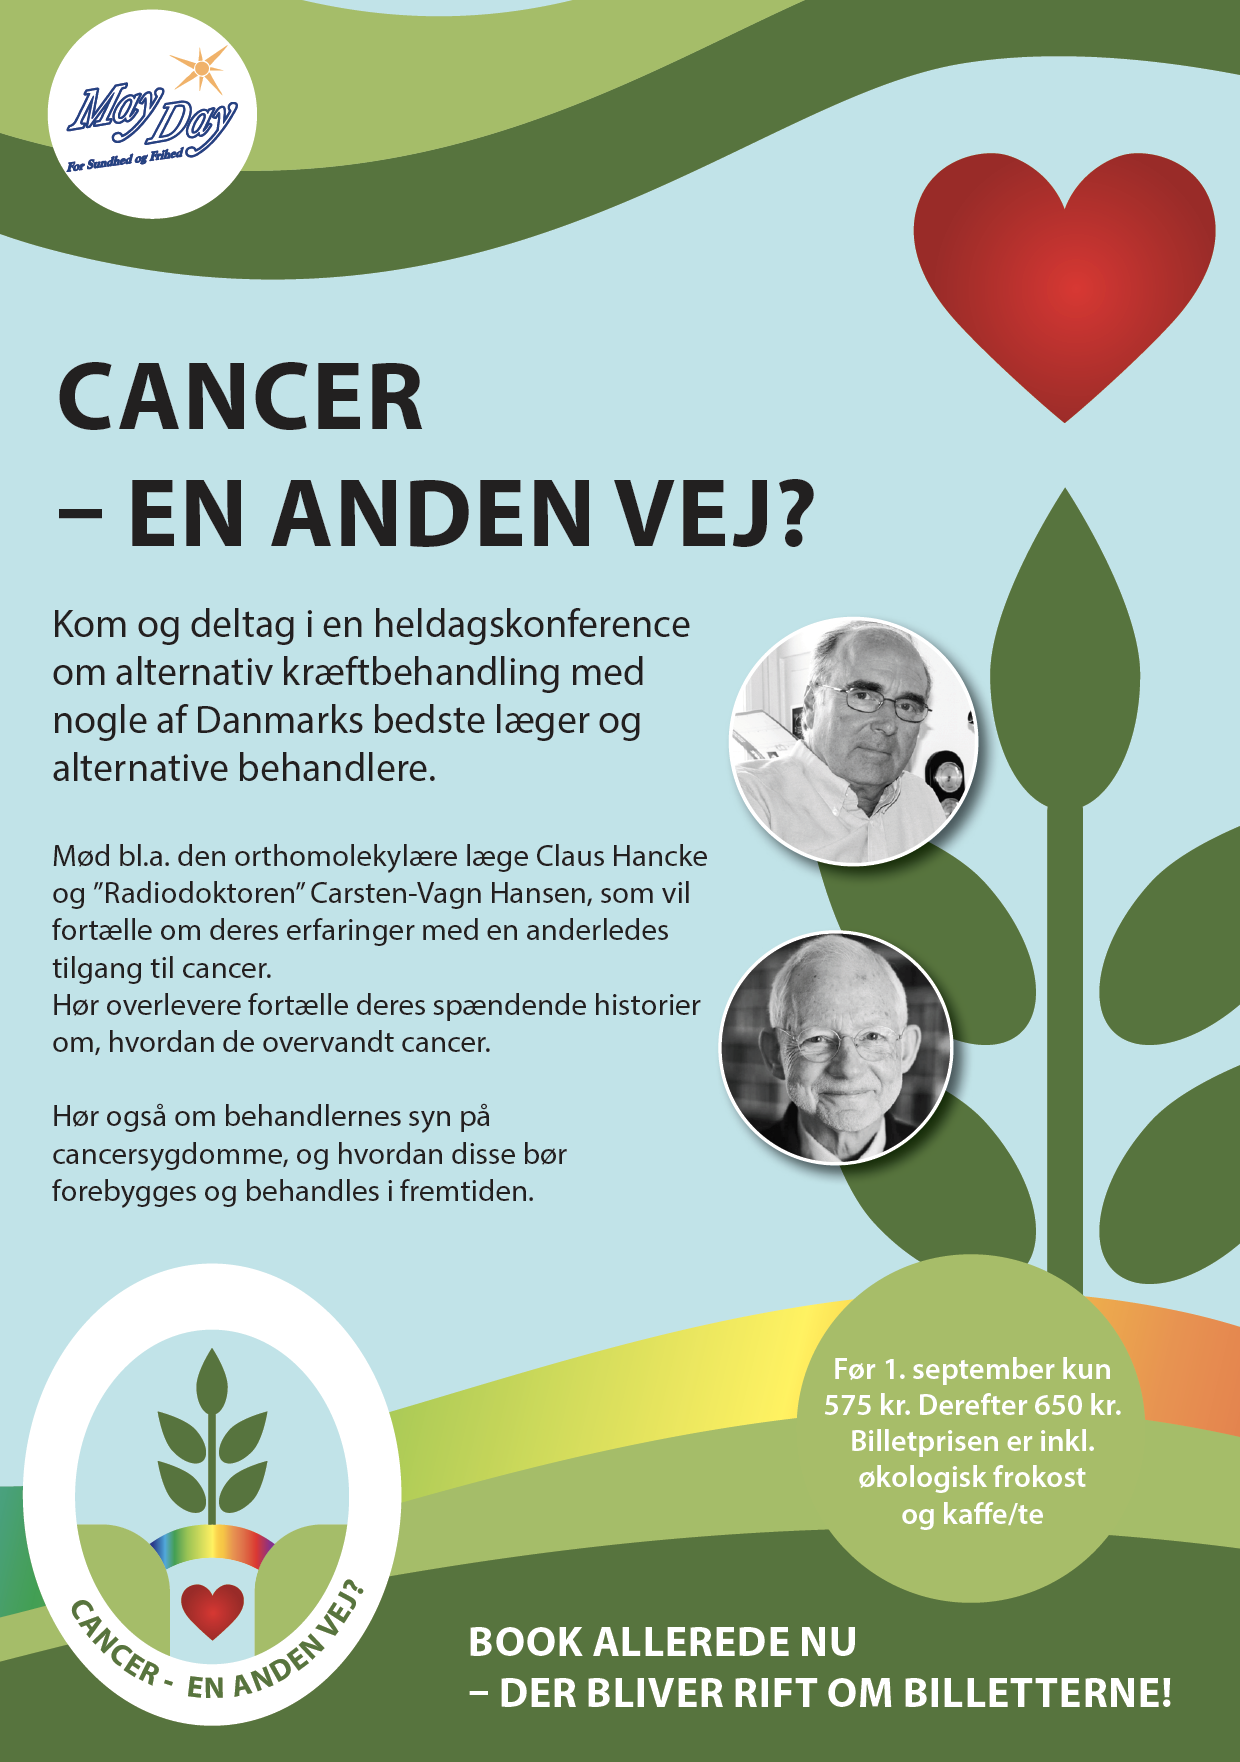 SPEAKER: Lecture at the Cancer Conference in Copenhagen 2018 on